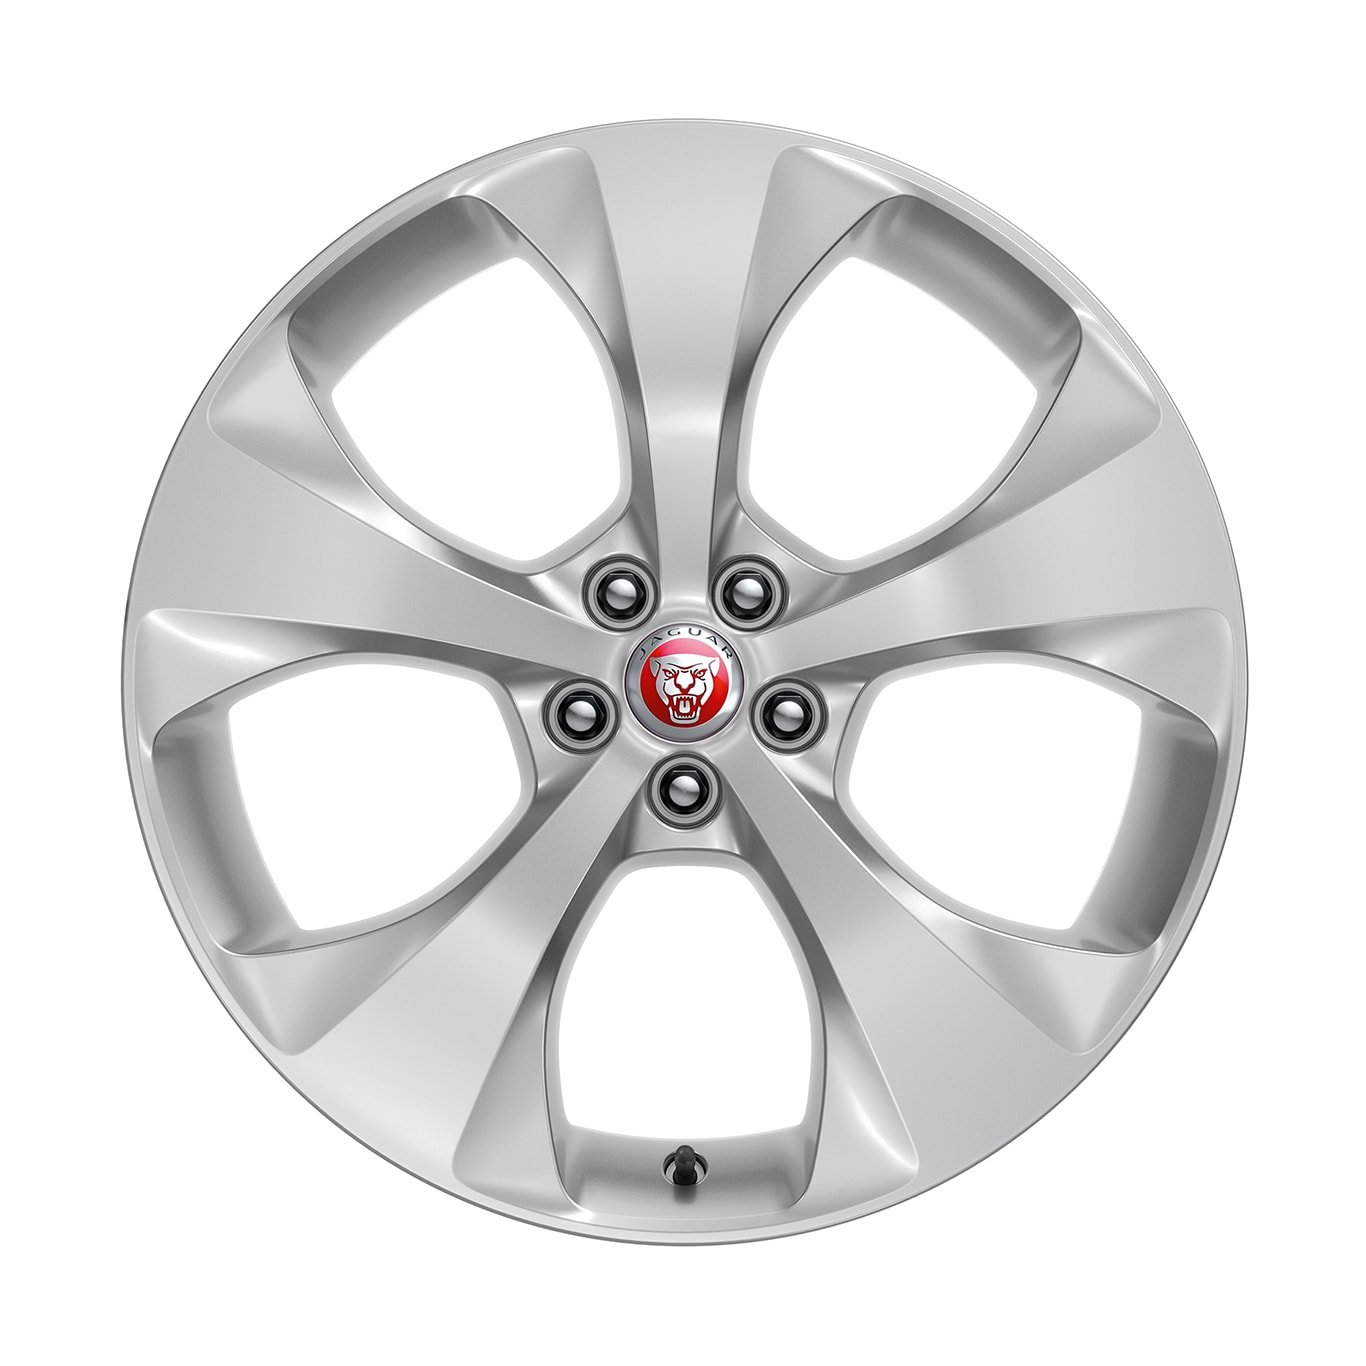 "Alloy Wheel - 20"" 5 Spoke, 'Style 5054'"